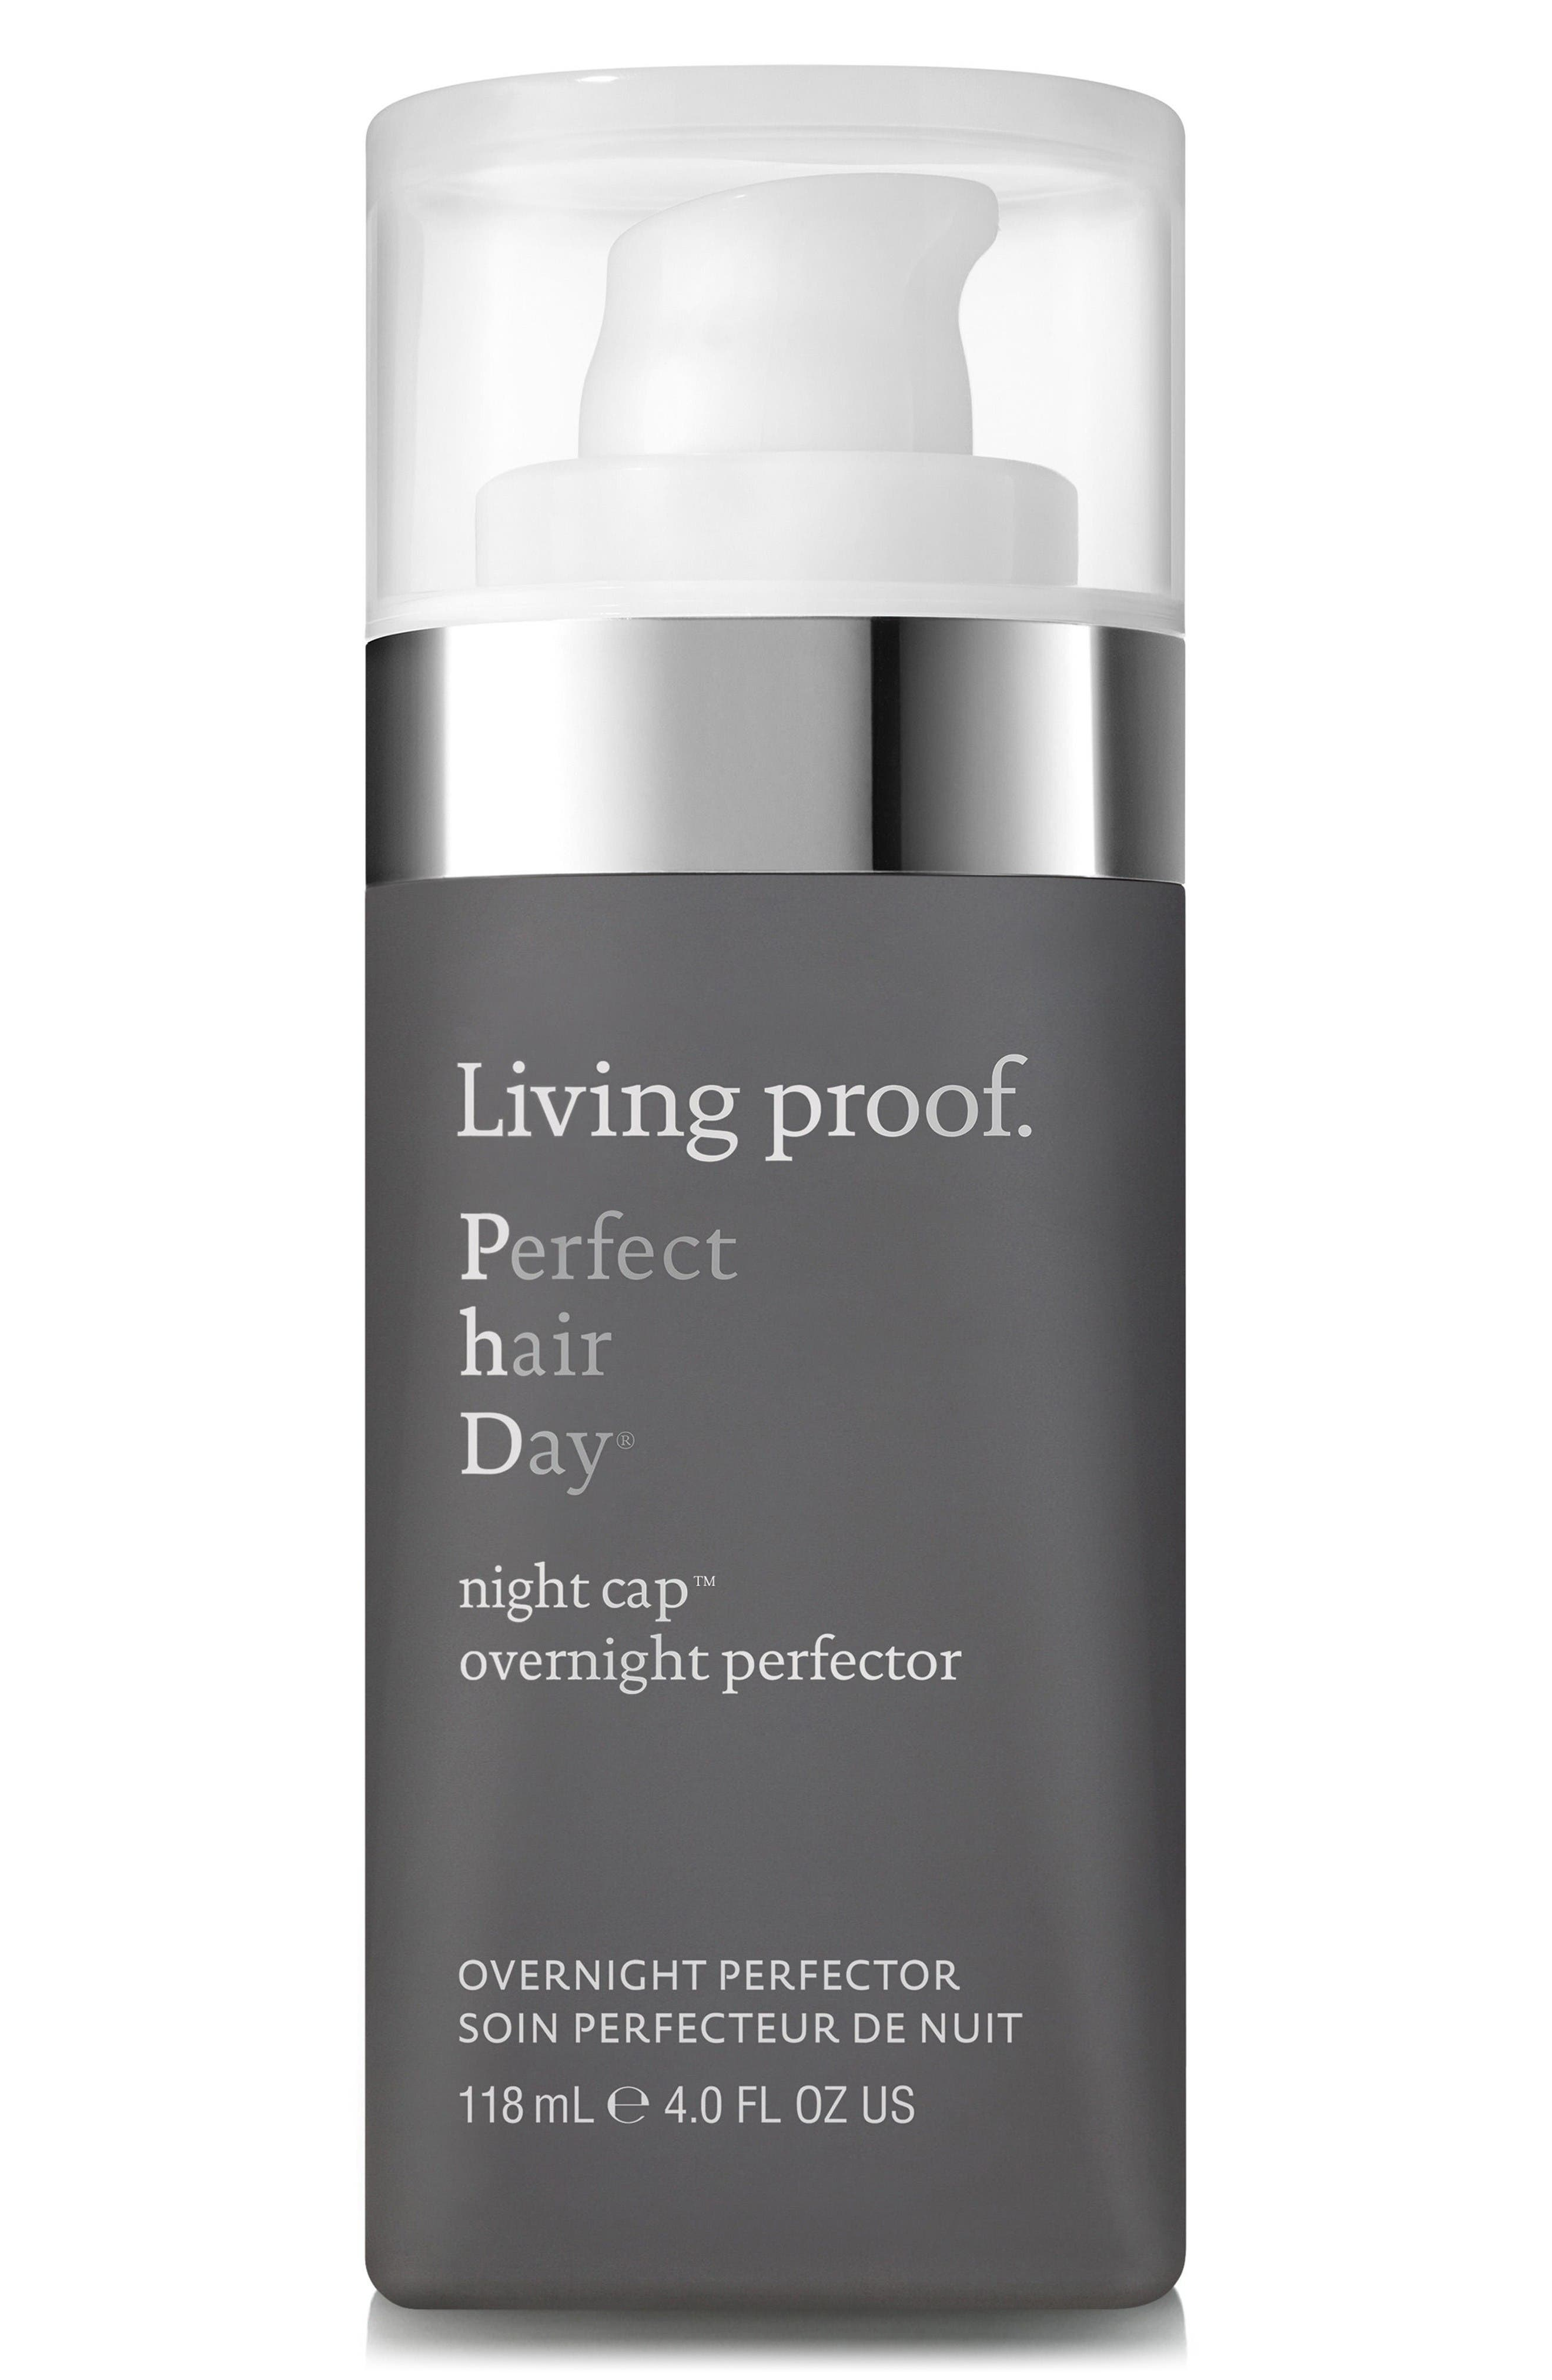 Alternate Image 1 Selected - Living proof® Perfect hair Day™ Night Cap Perfector